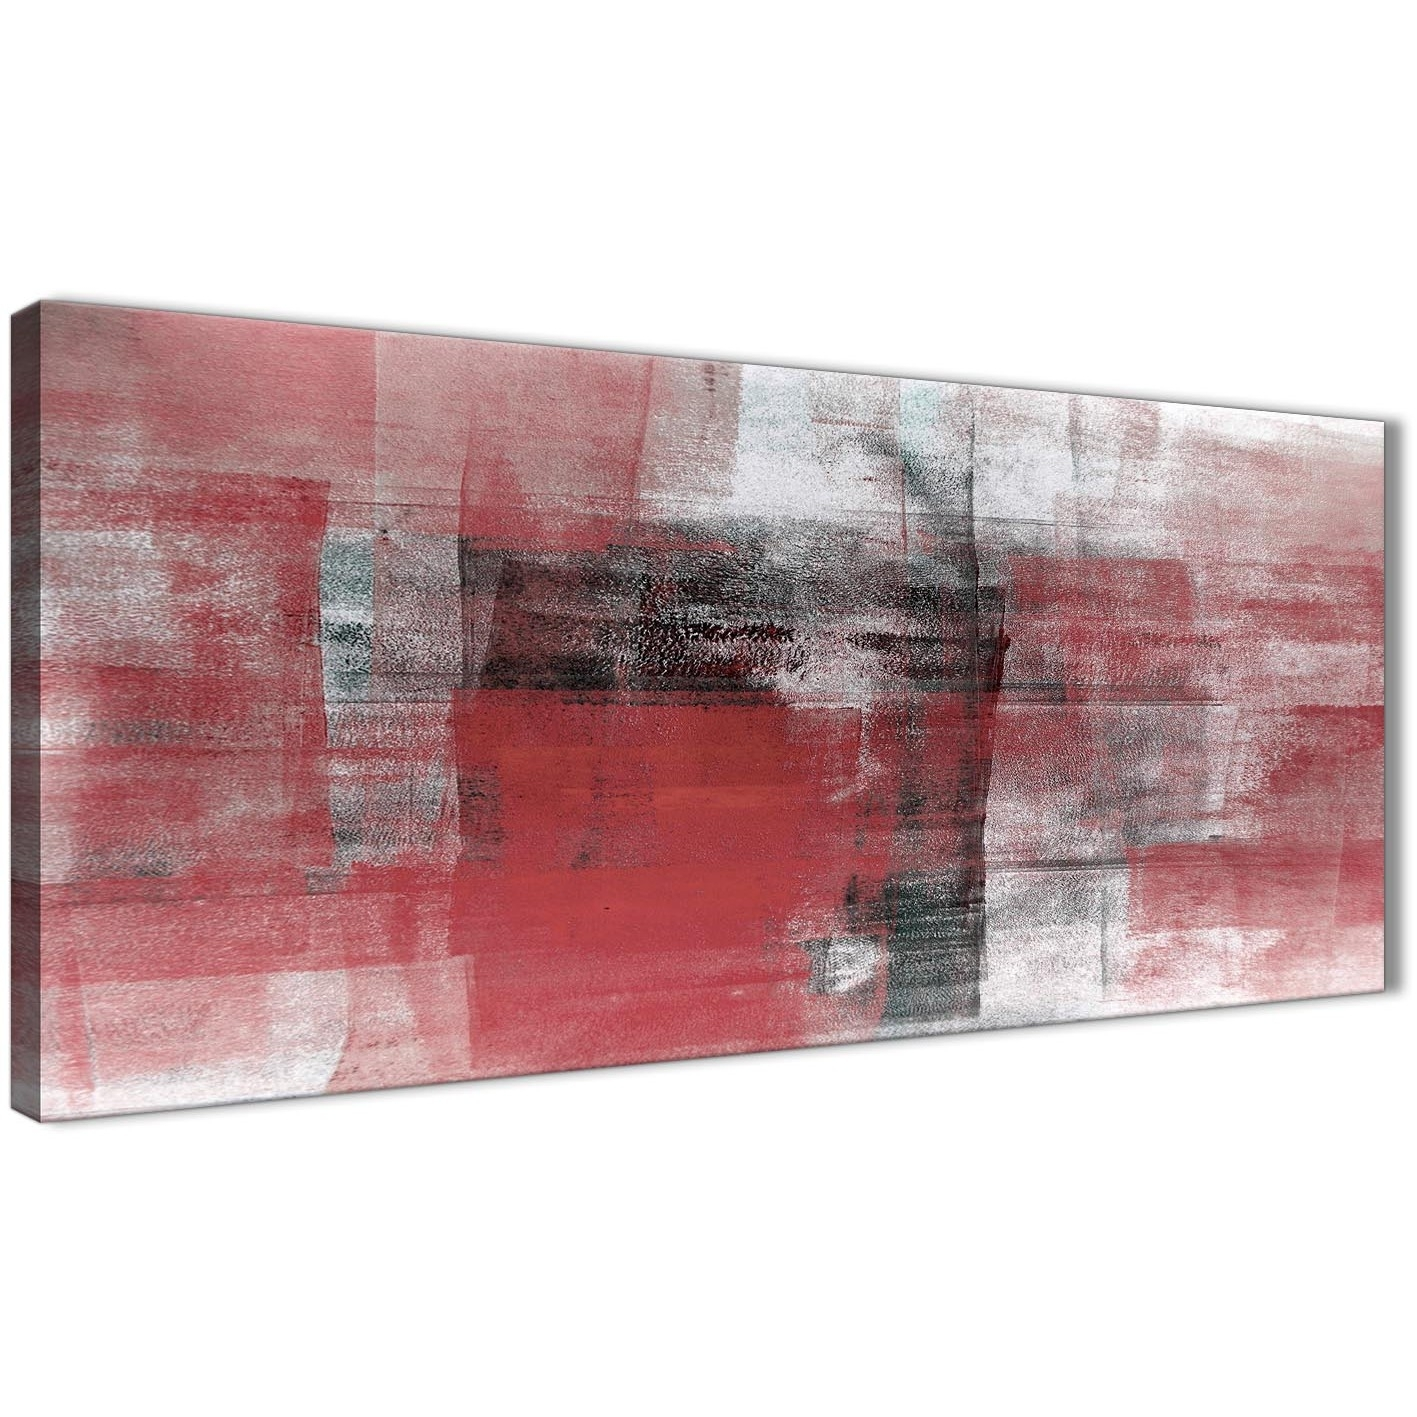 Red Black White Painting Living Room Canvas Wall Art Accessories With Regard To 2018 Red And Black Canvas Wall Art (View 19 of 20)